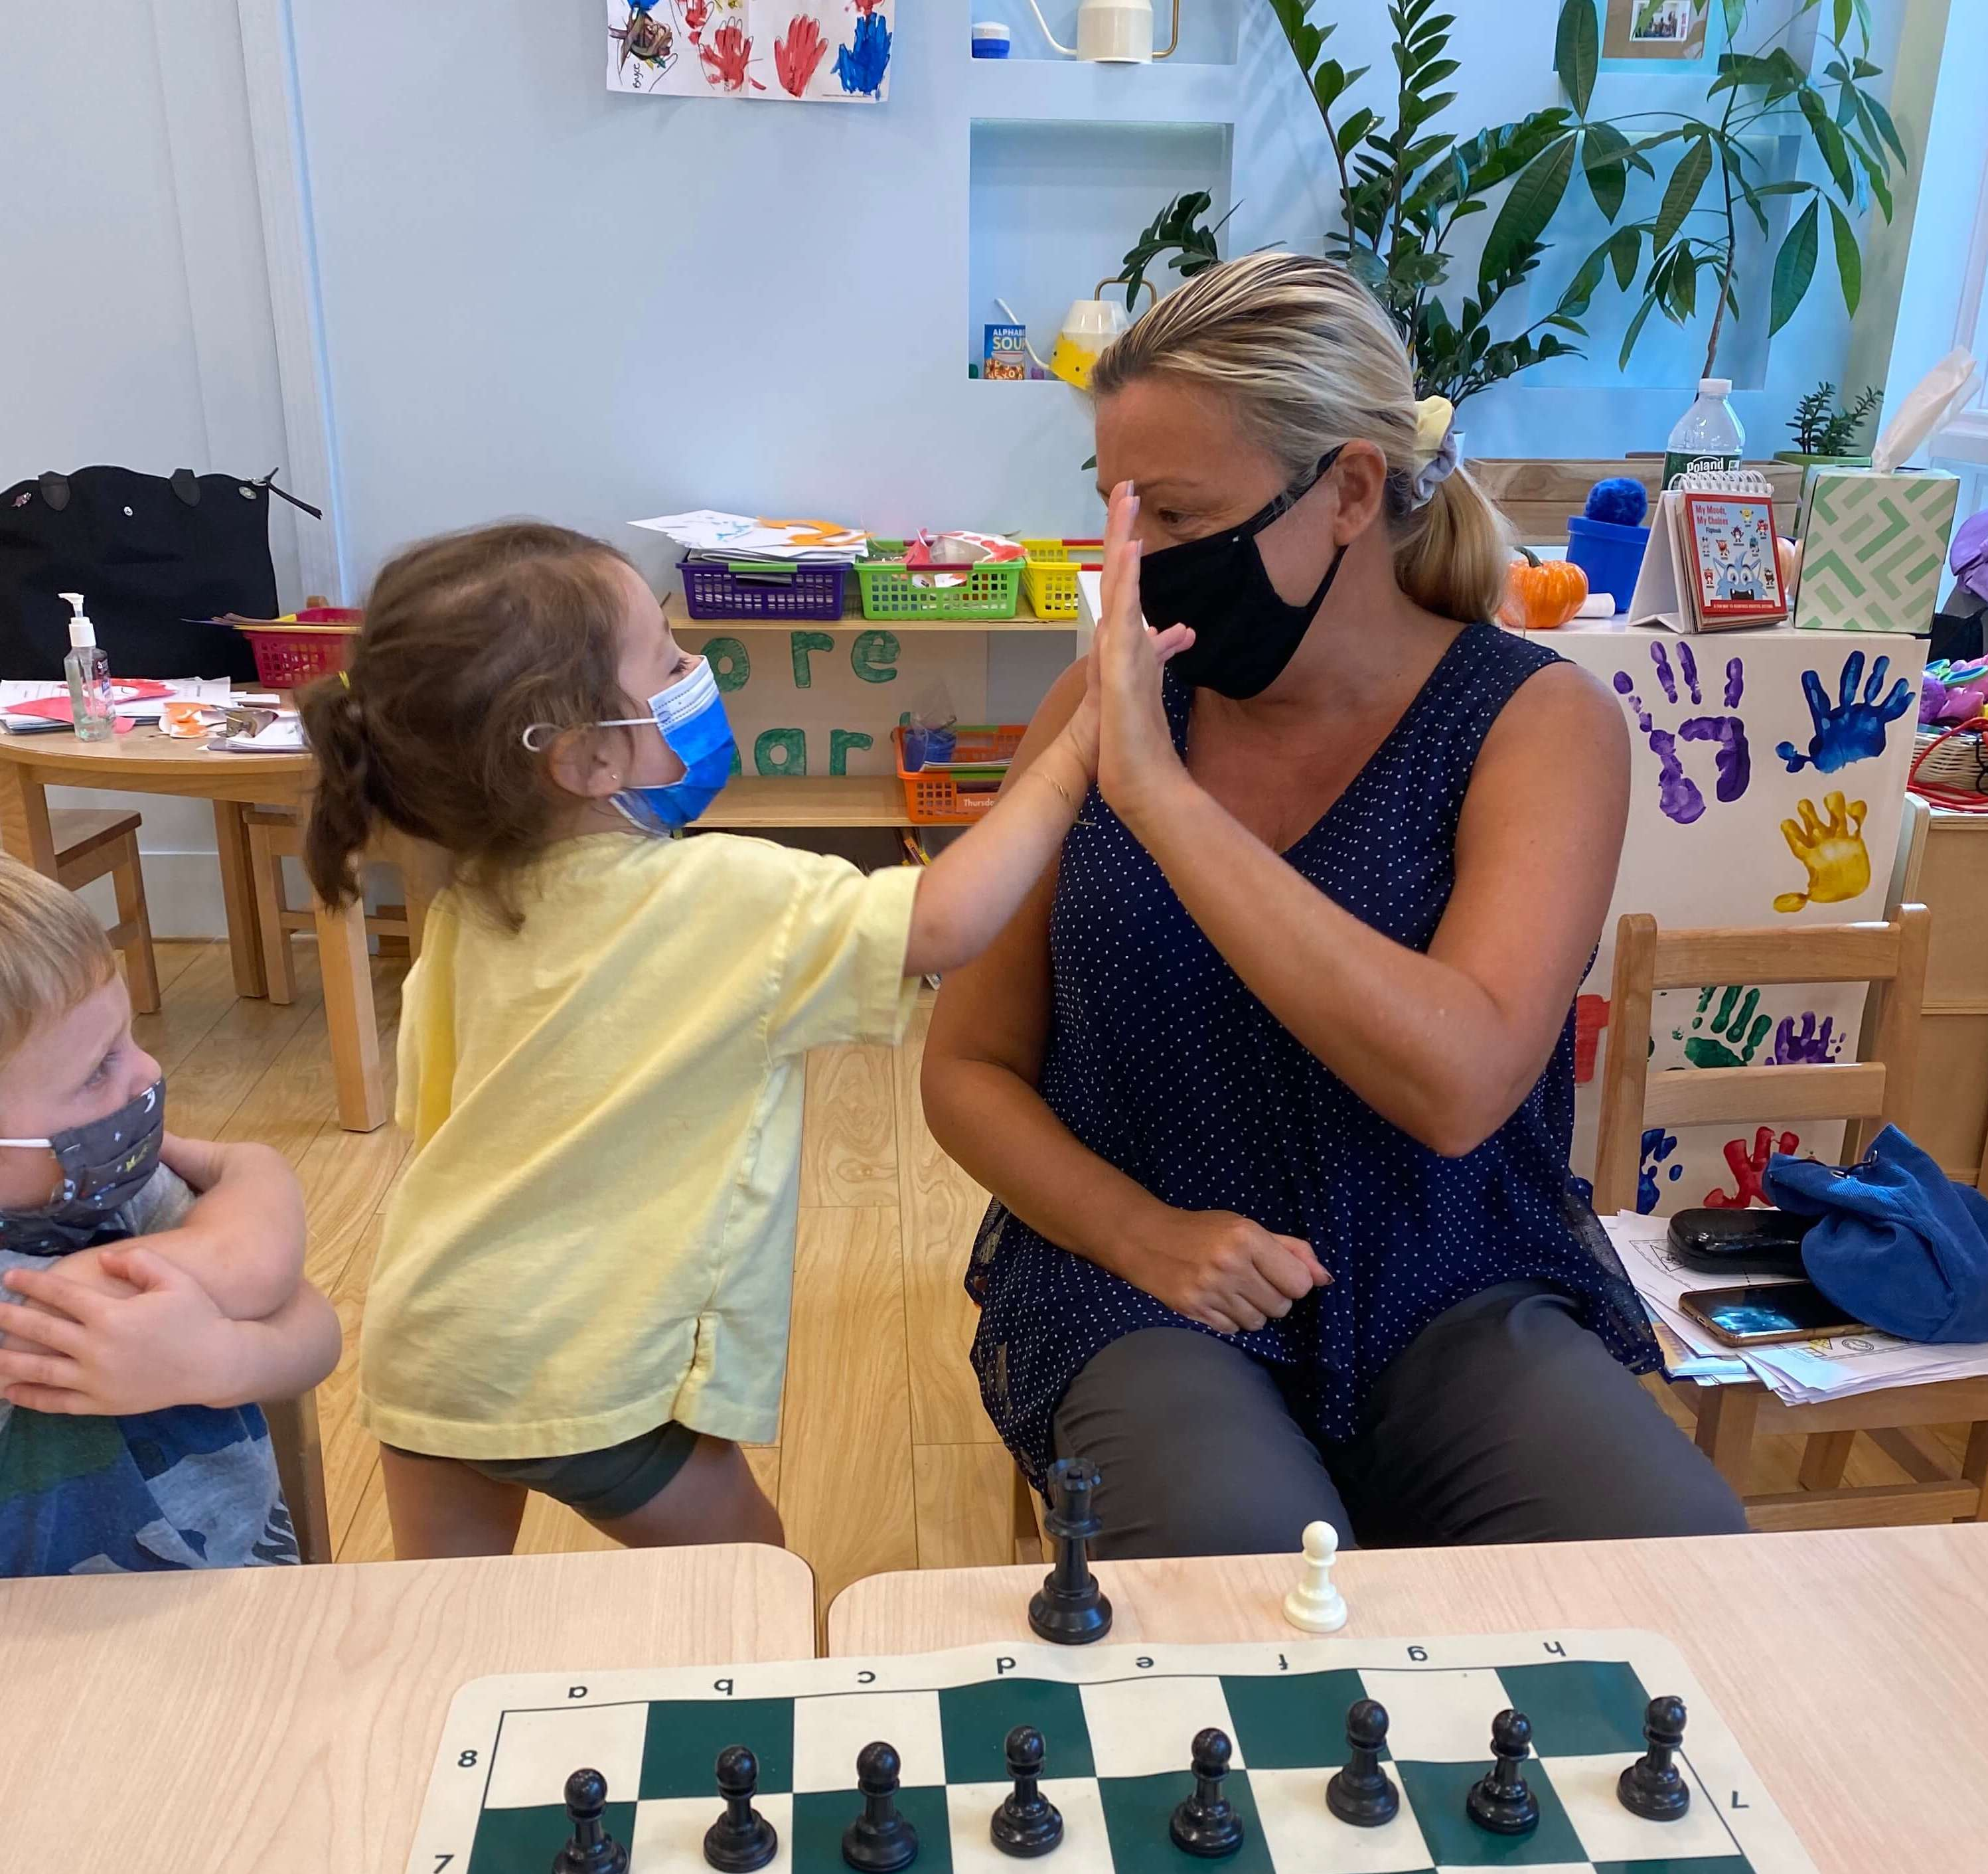 A young girl giving a high five to a teacher with a mask on as they play a game of chess in front of them on a table in a daycare